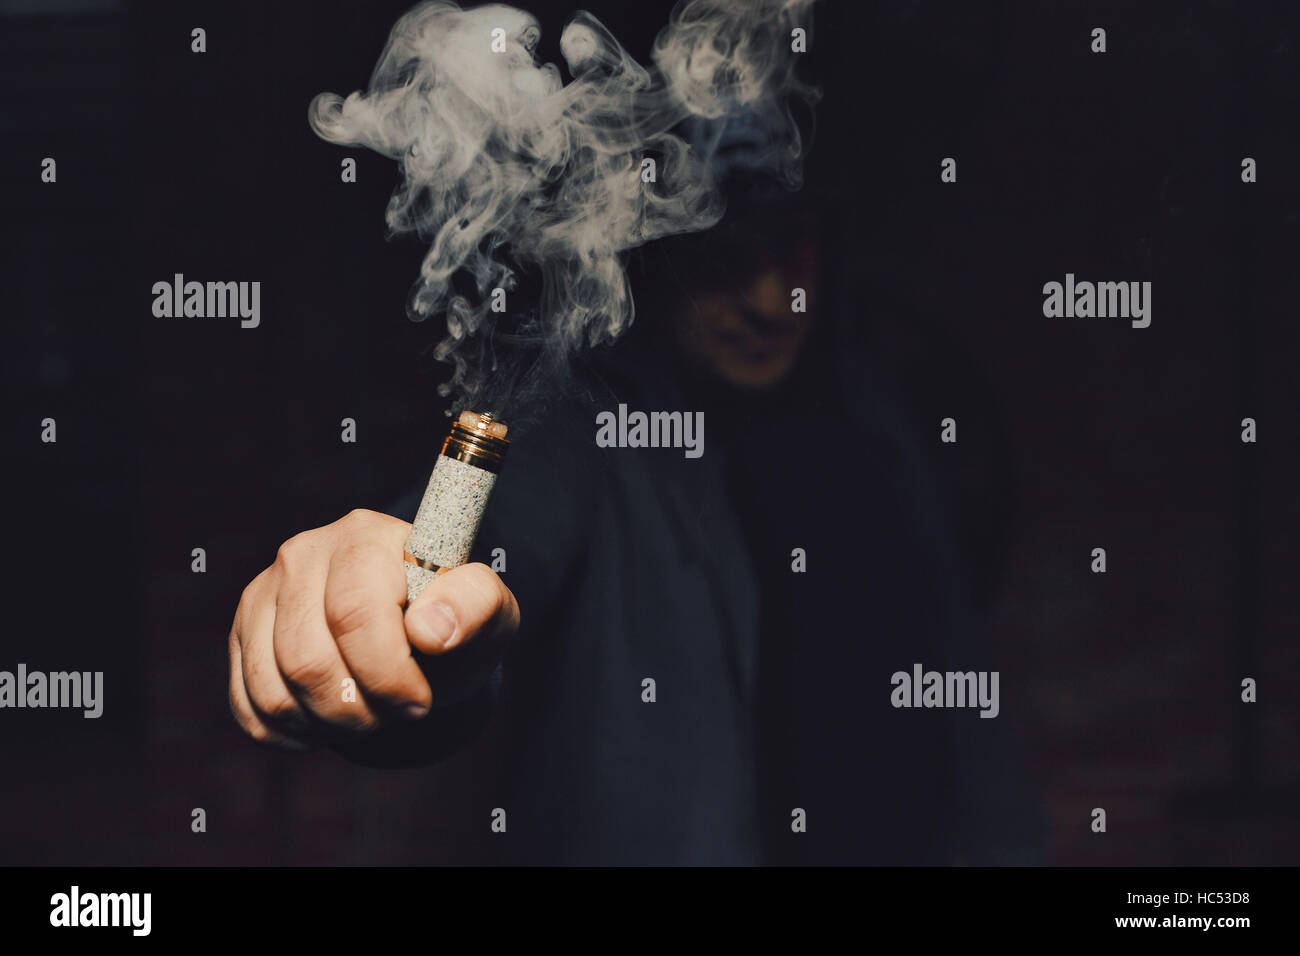 Man vaping an electronic cigarette - Stock Image